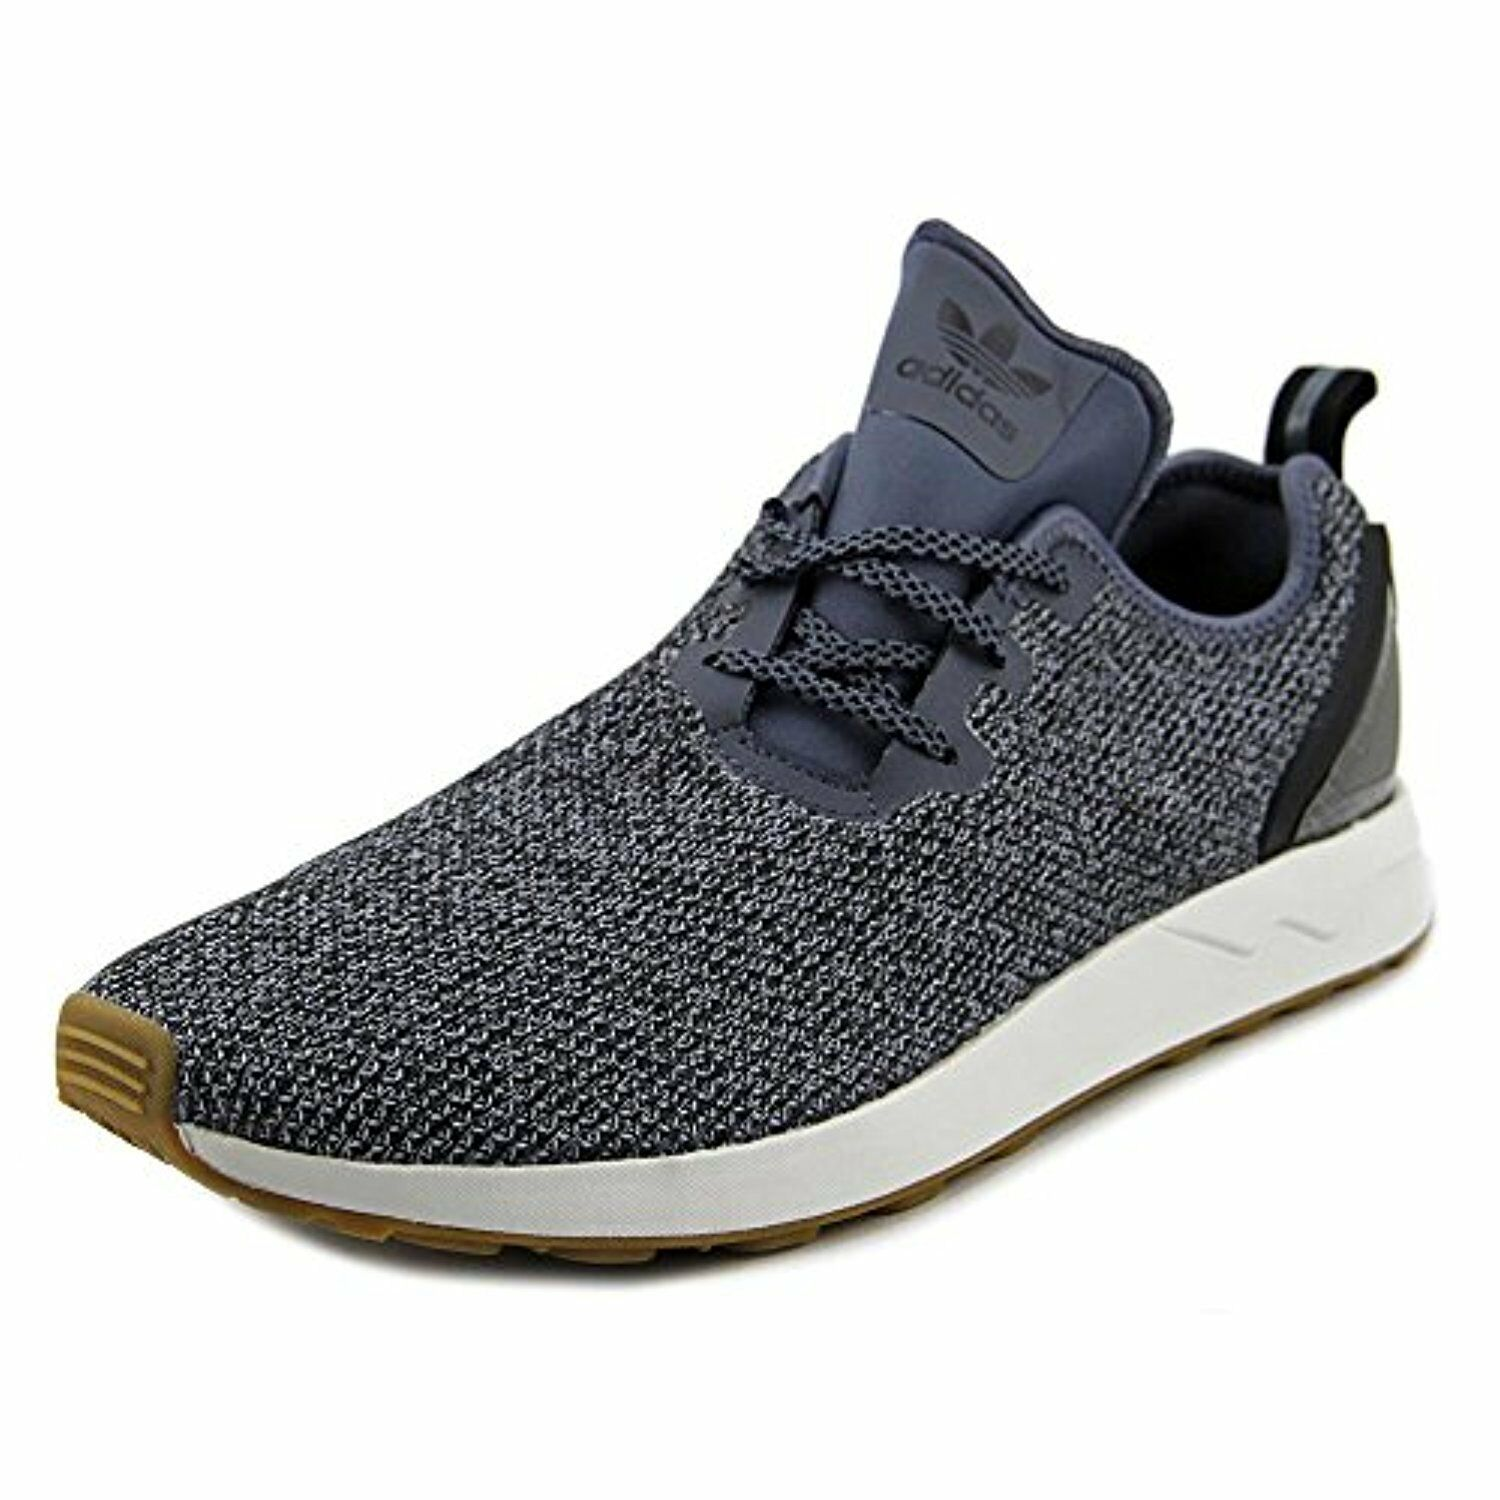 adidas ZX Flux Black/Crystal ADV Asymmetrical Shoes, Onix/Core Black/Crystal Flux White (BB3705) c14a4a